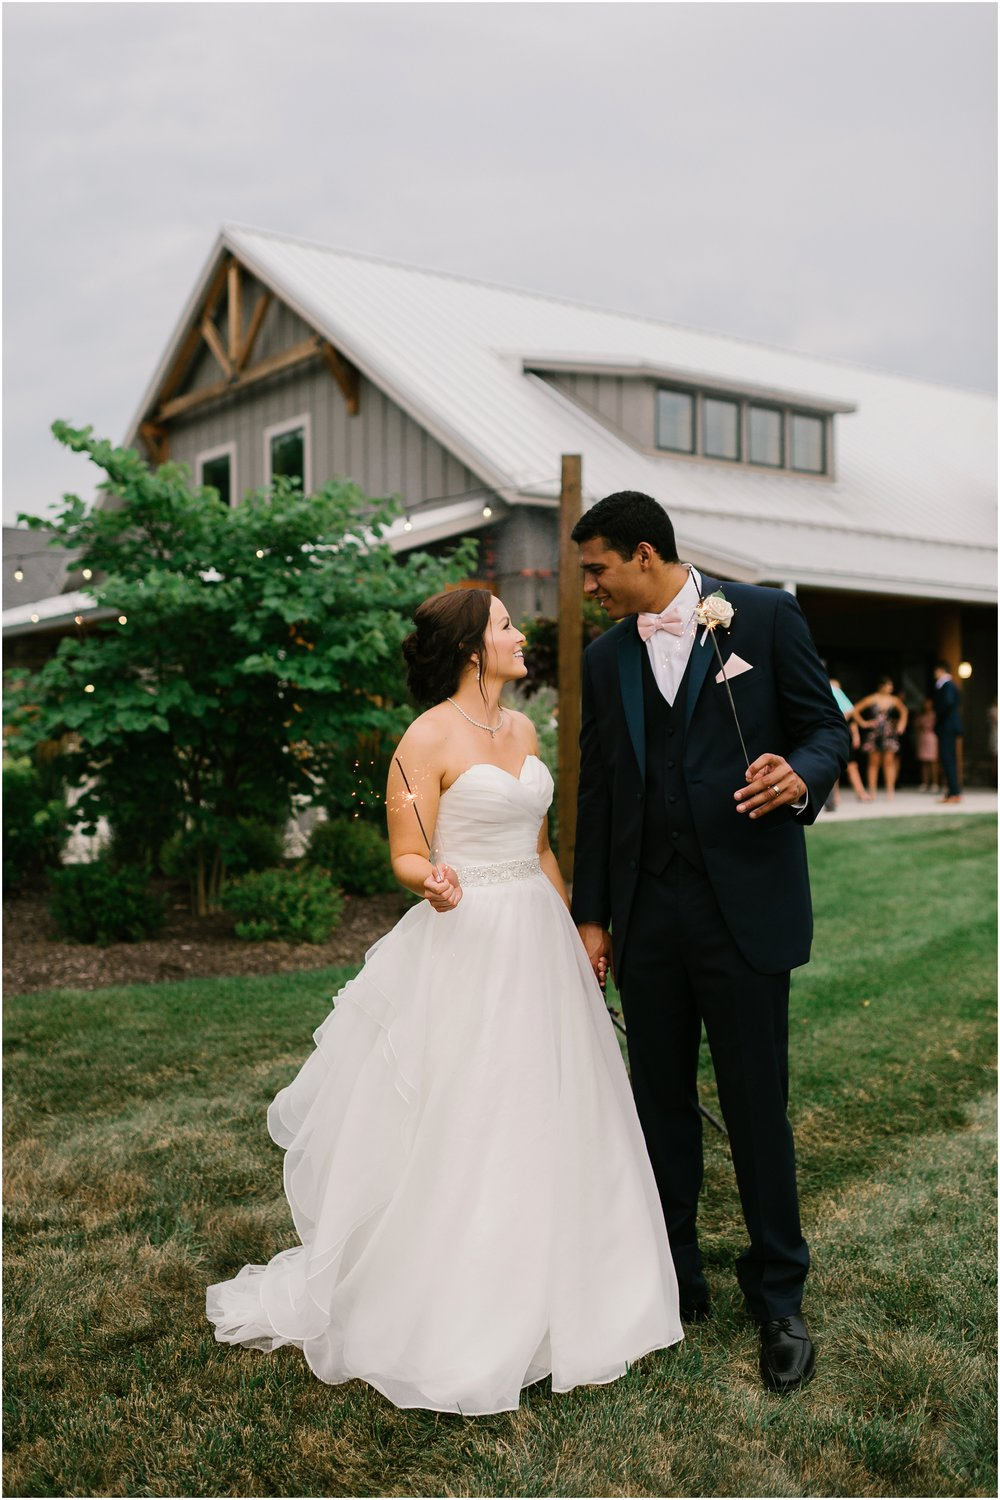 Rebecca_Shehorn_Photography_Indianapolis_Wedding_Photographer_8688.jpg